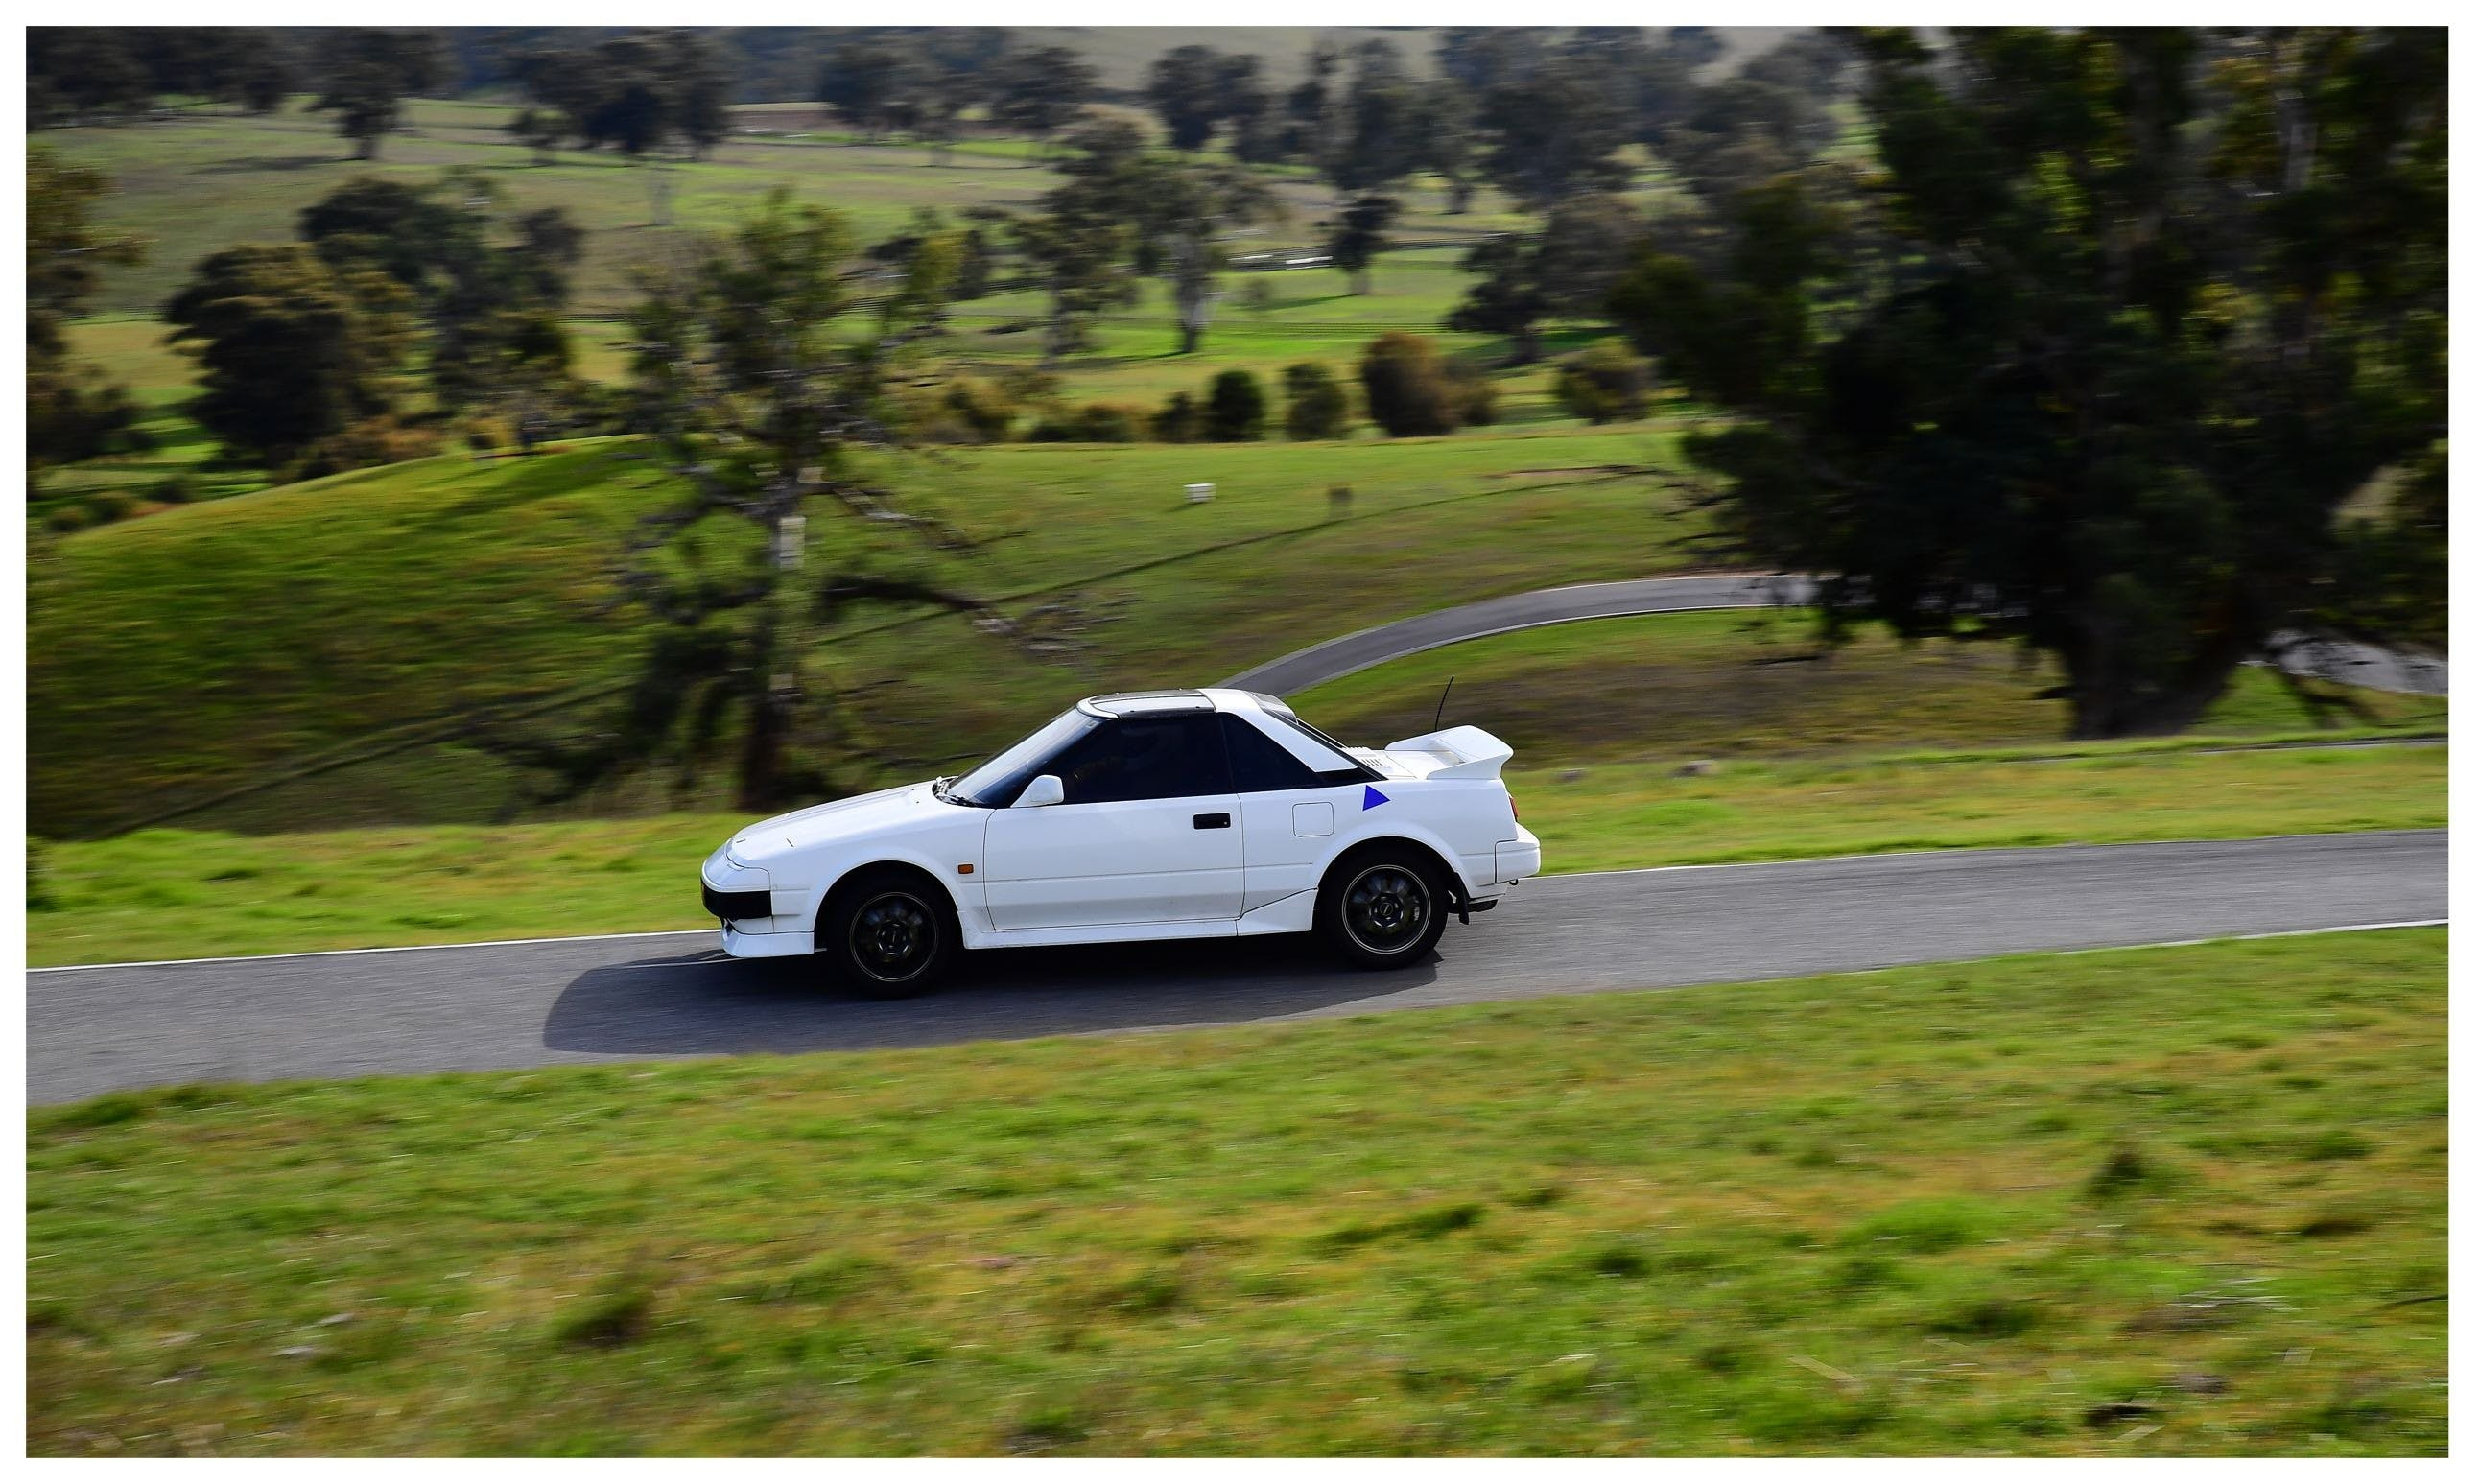 Winter Cup 4 - Hillclimb - Australia Accommodation